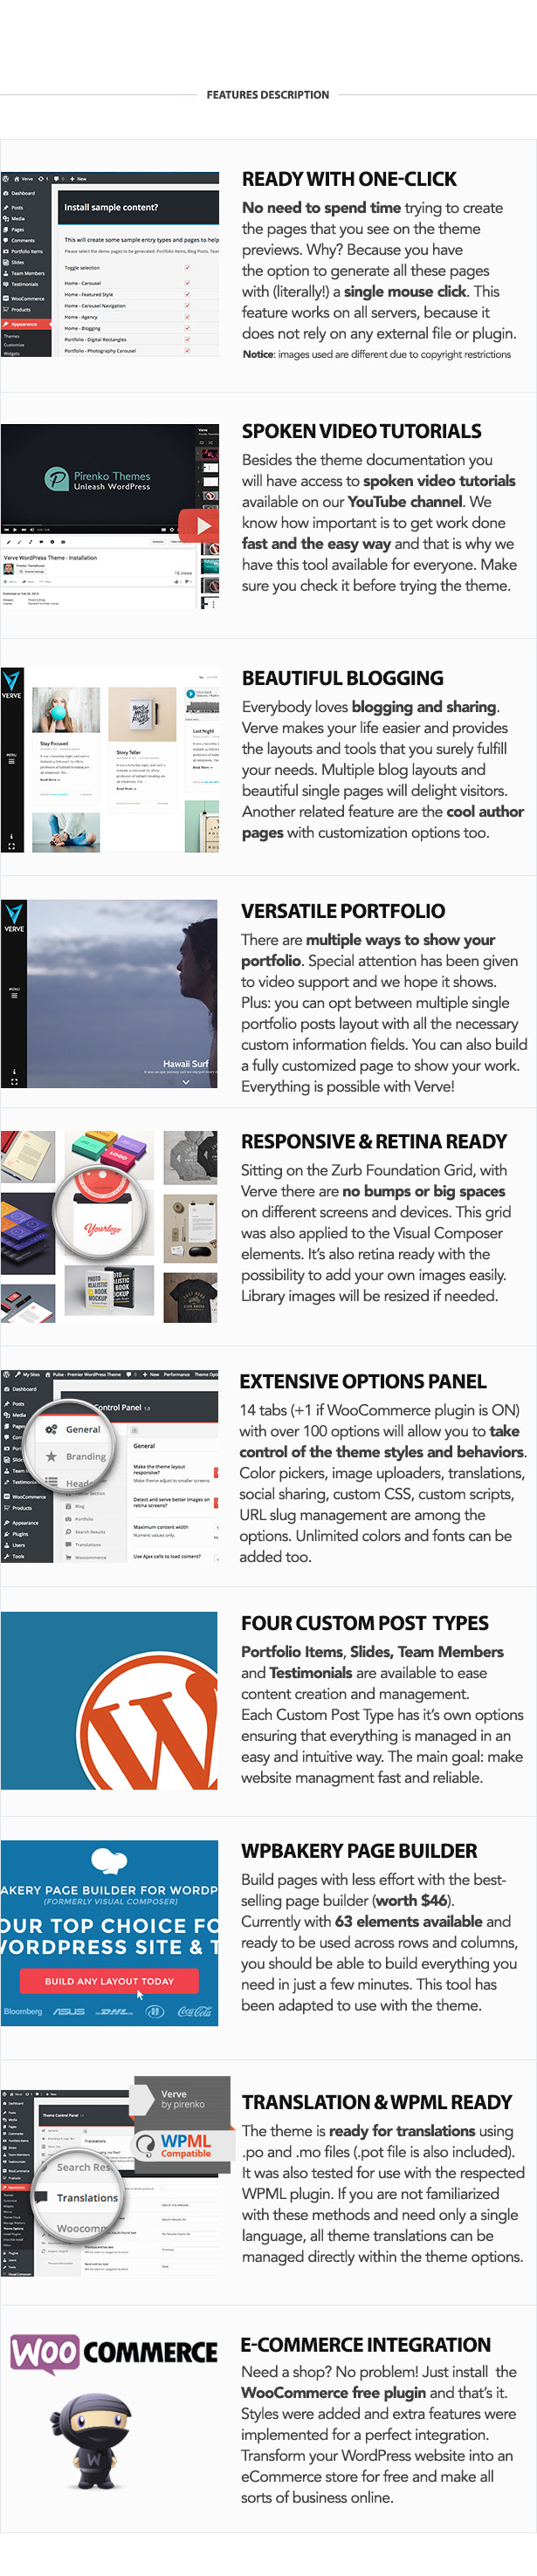 Verve - High-Style WordPress Theme - 4